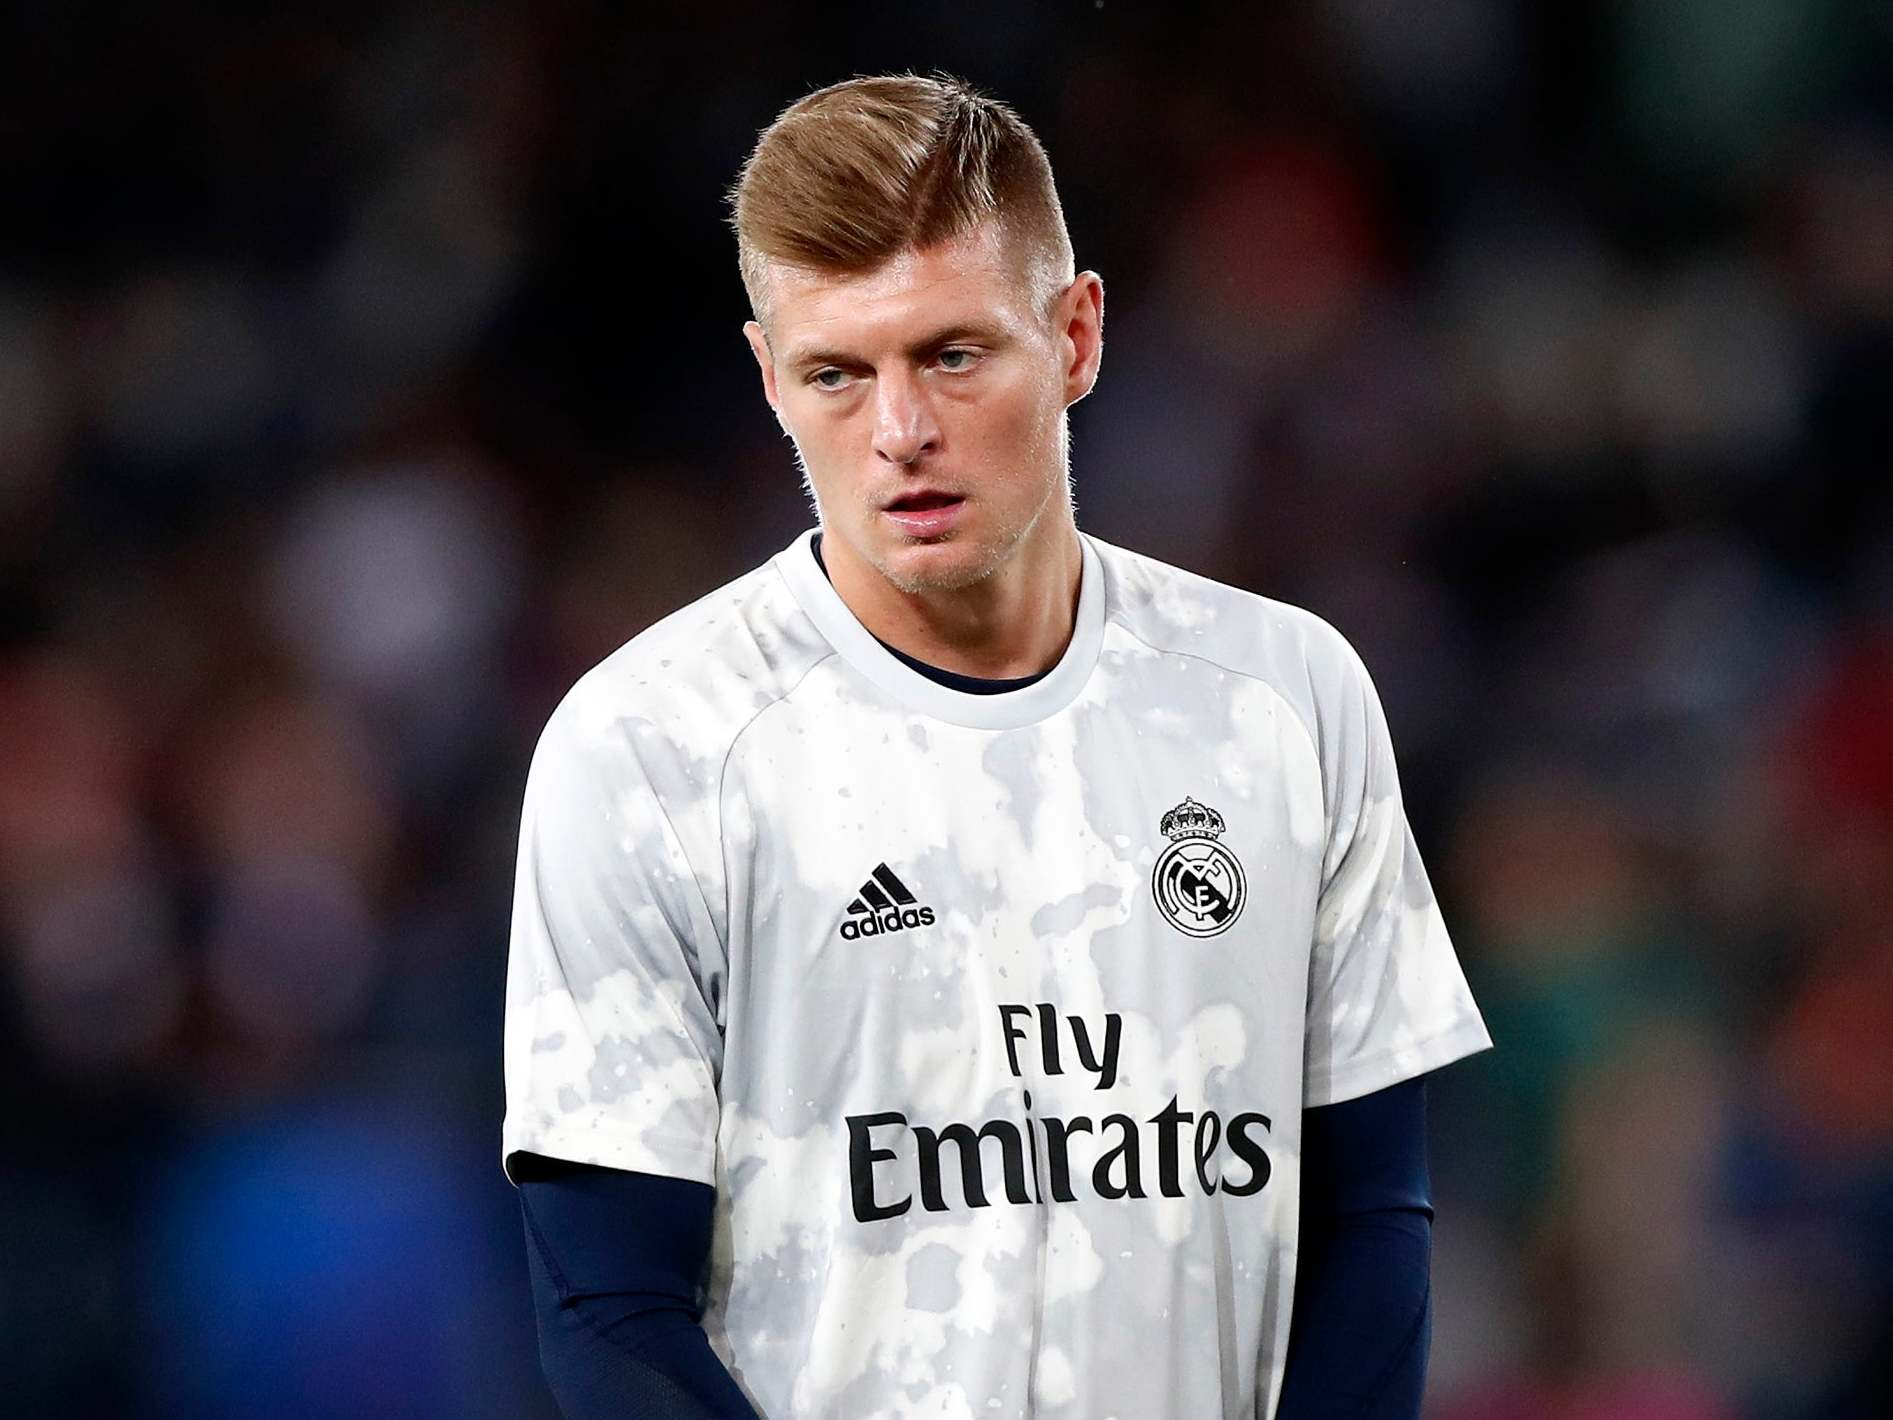 Manchester United transfer news: Toni Kroos, Moussa Dembele, Saul, James Maddison, Mario Mandzukic latest